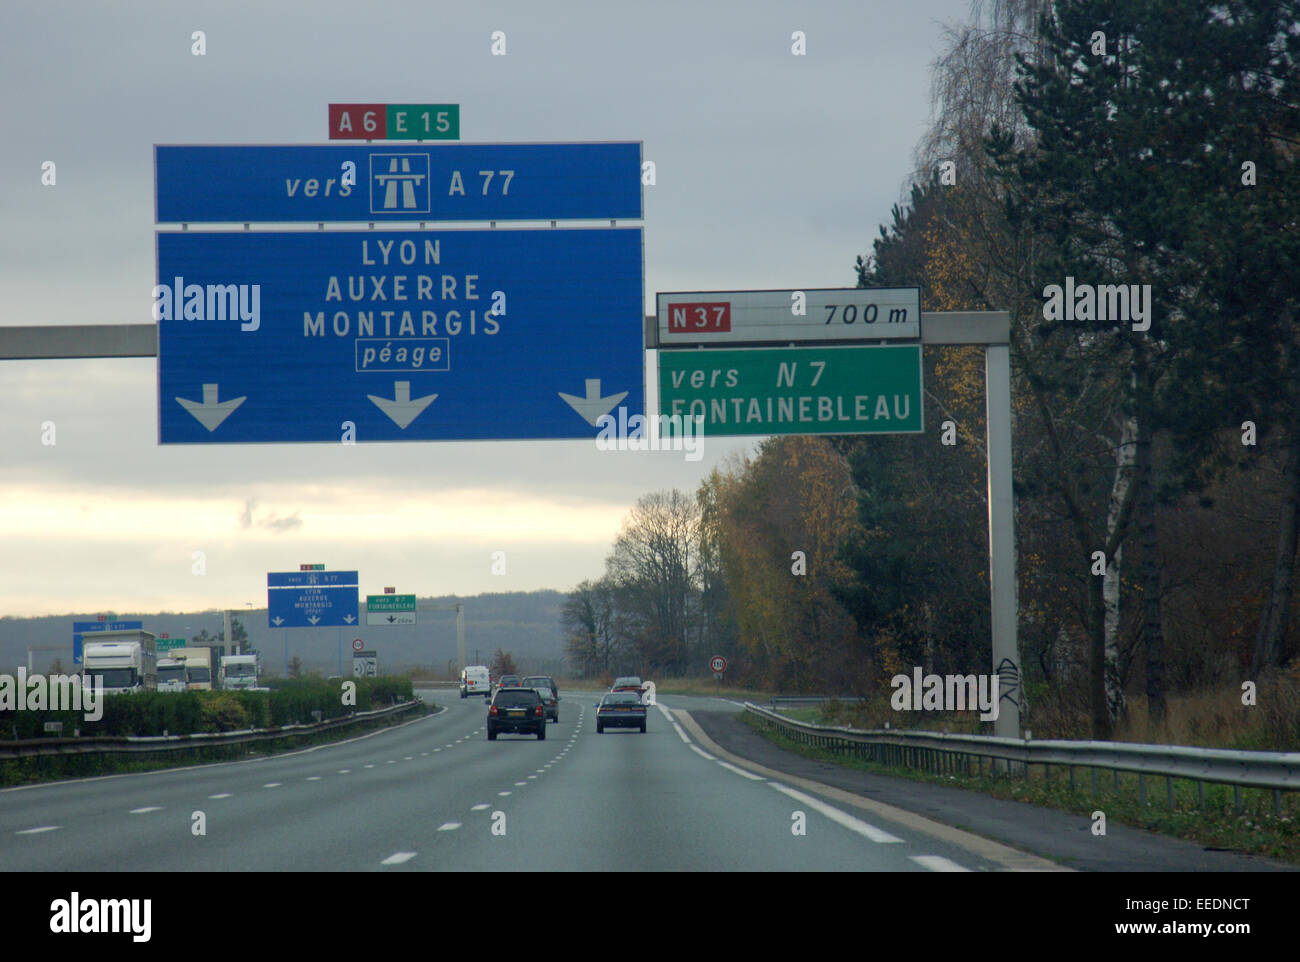 a6 e15 a77 autoroute motoway through france sign to lyon auxerre stock photo royalty free. Black Bedroom Furniture Sets. Home Design Ideas